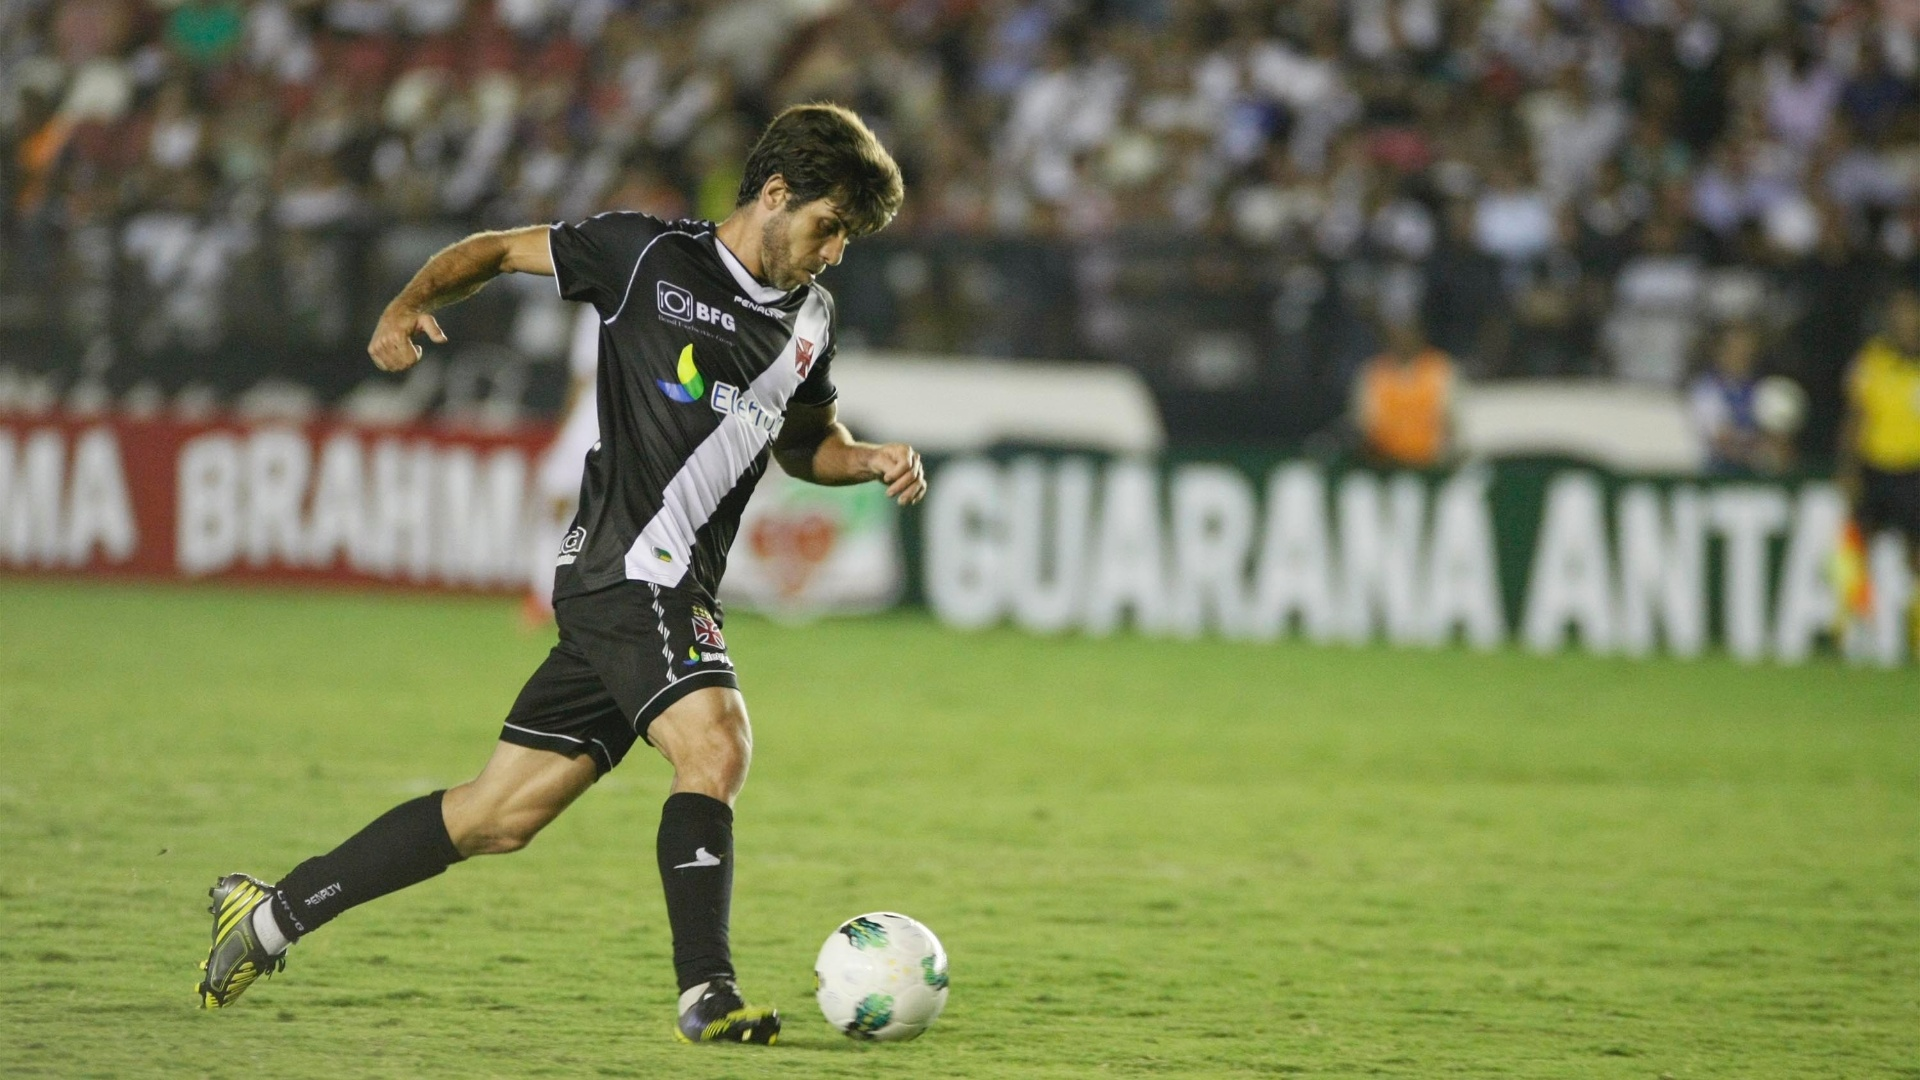 Juninho Pernambucano conduz o Vasco ao ataque na partida contra o So Paulo, em So Janurio